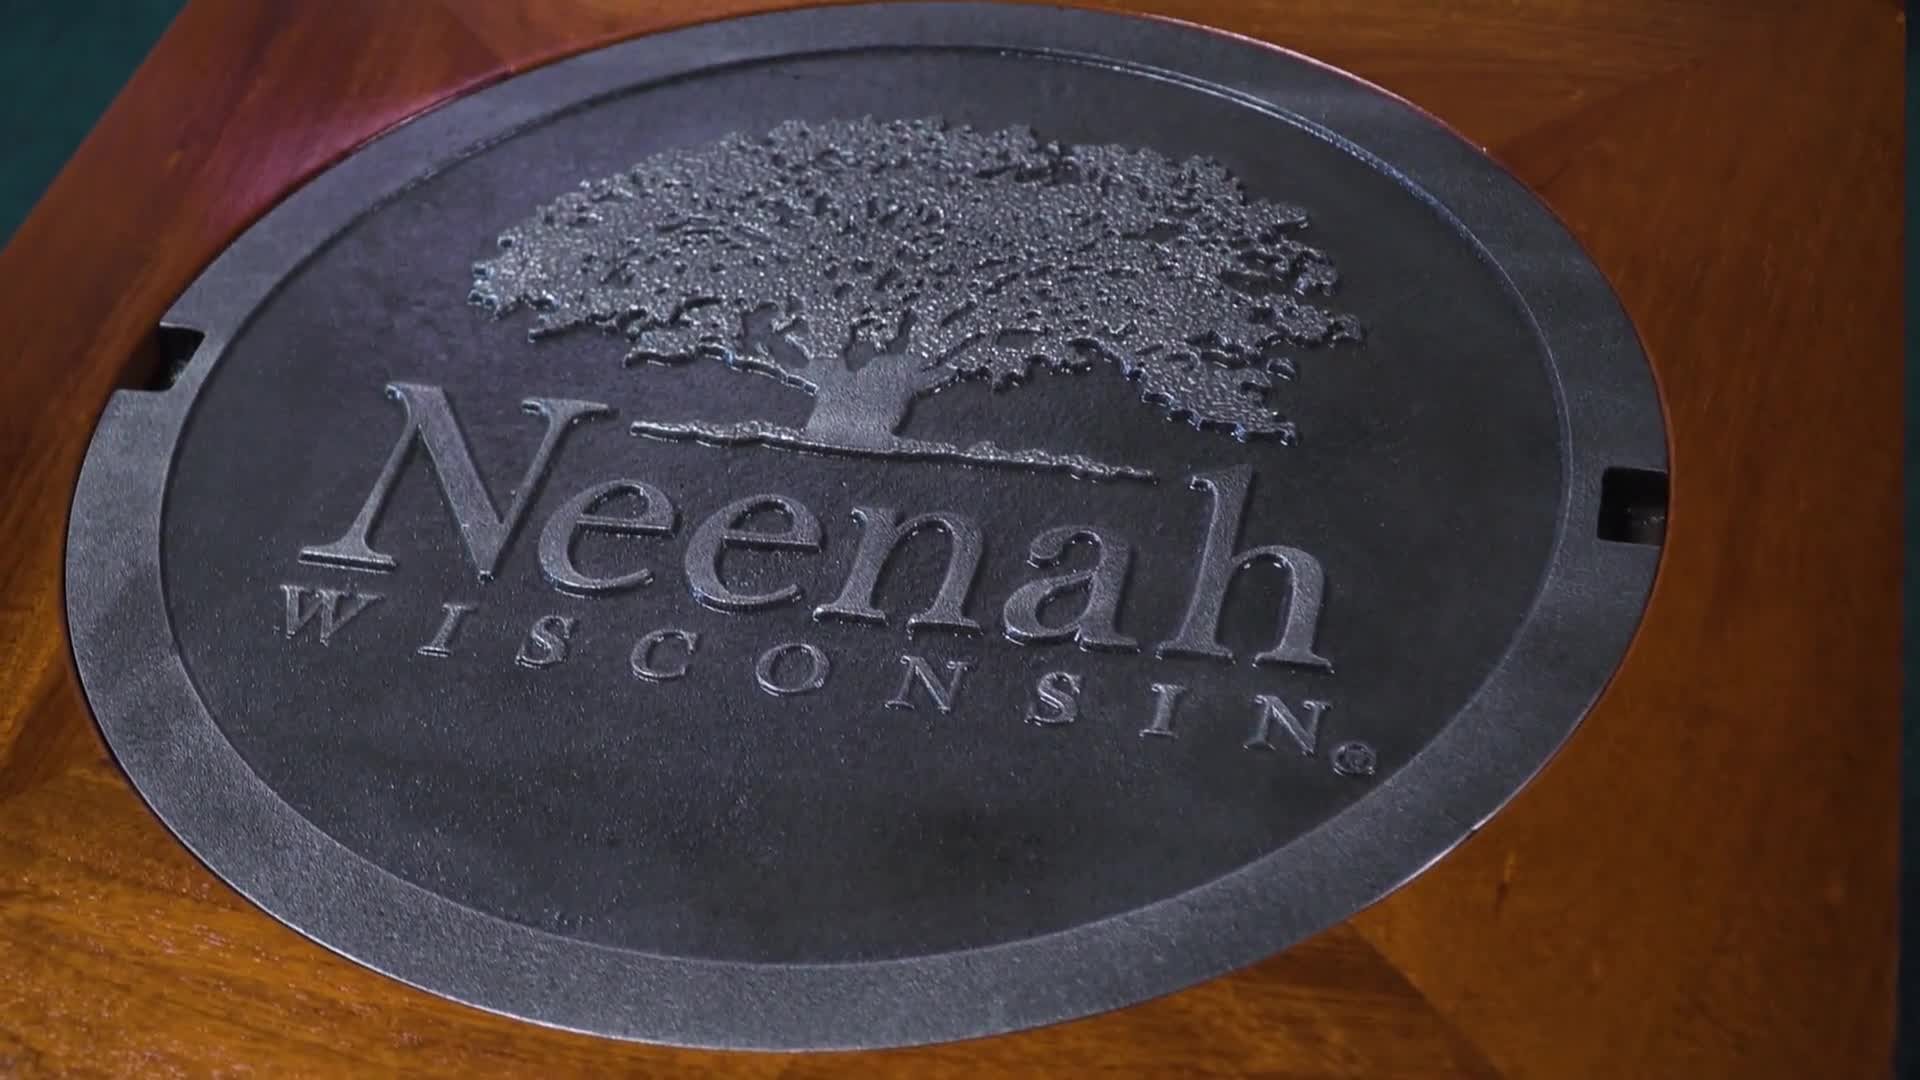 Neenah Foundry | Metal castings proudly made in the USA